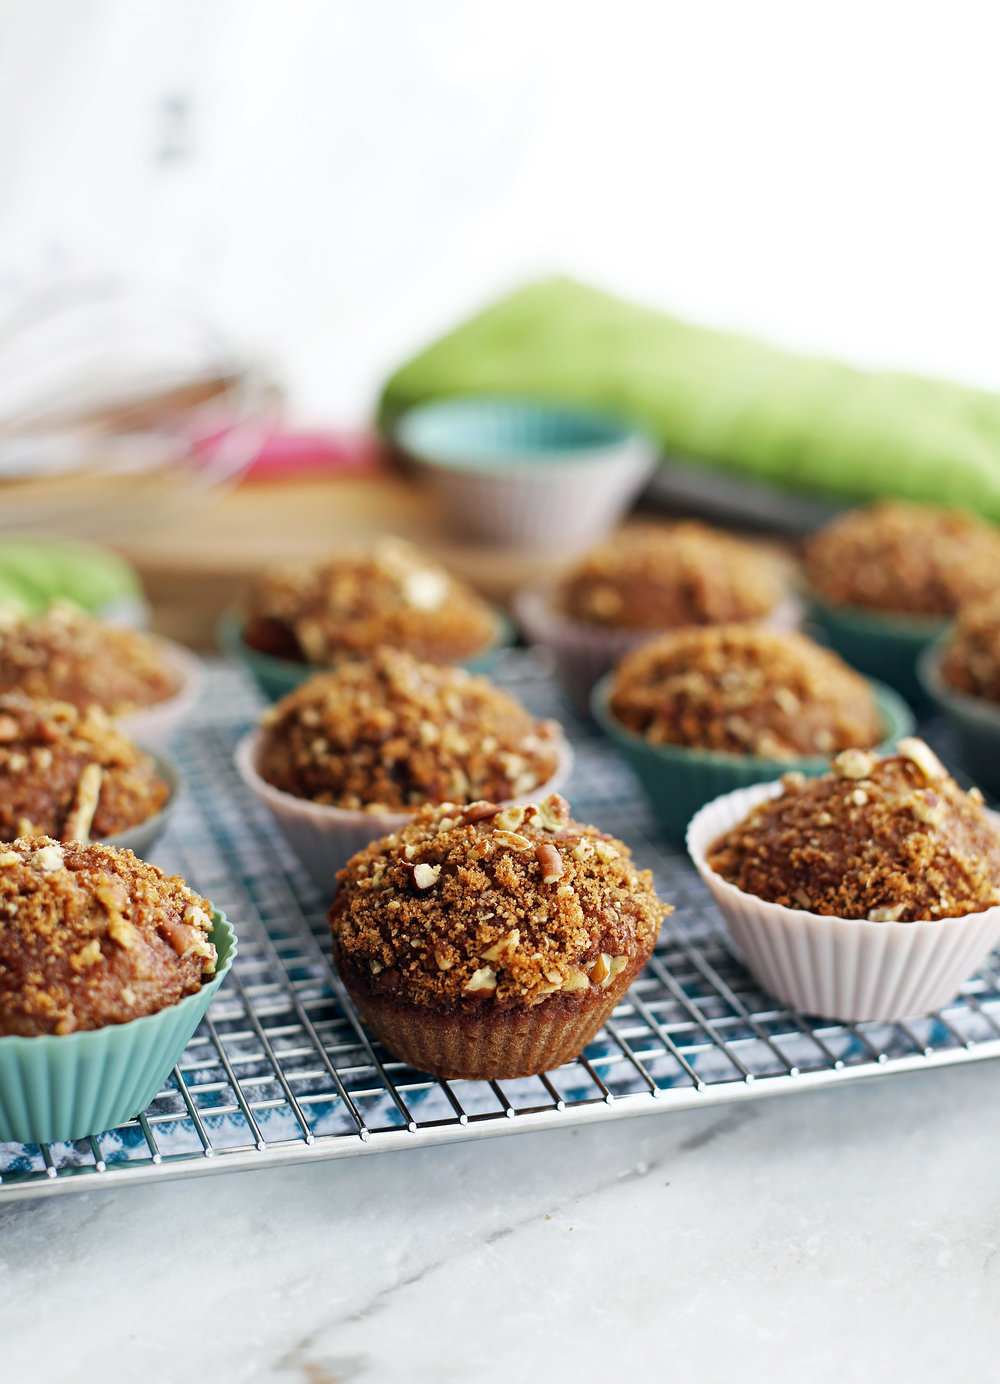 Side view of cinnamon pecan applesauce muffins with a crunchy pecan topping on a cooling rack.